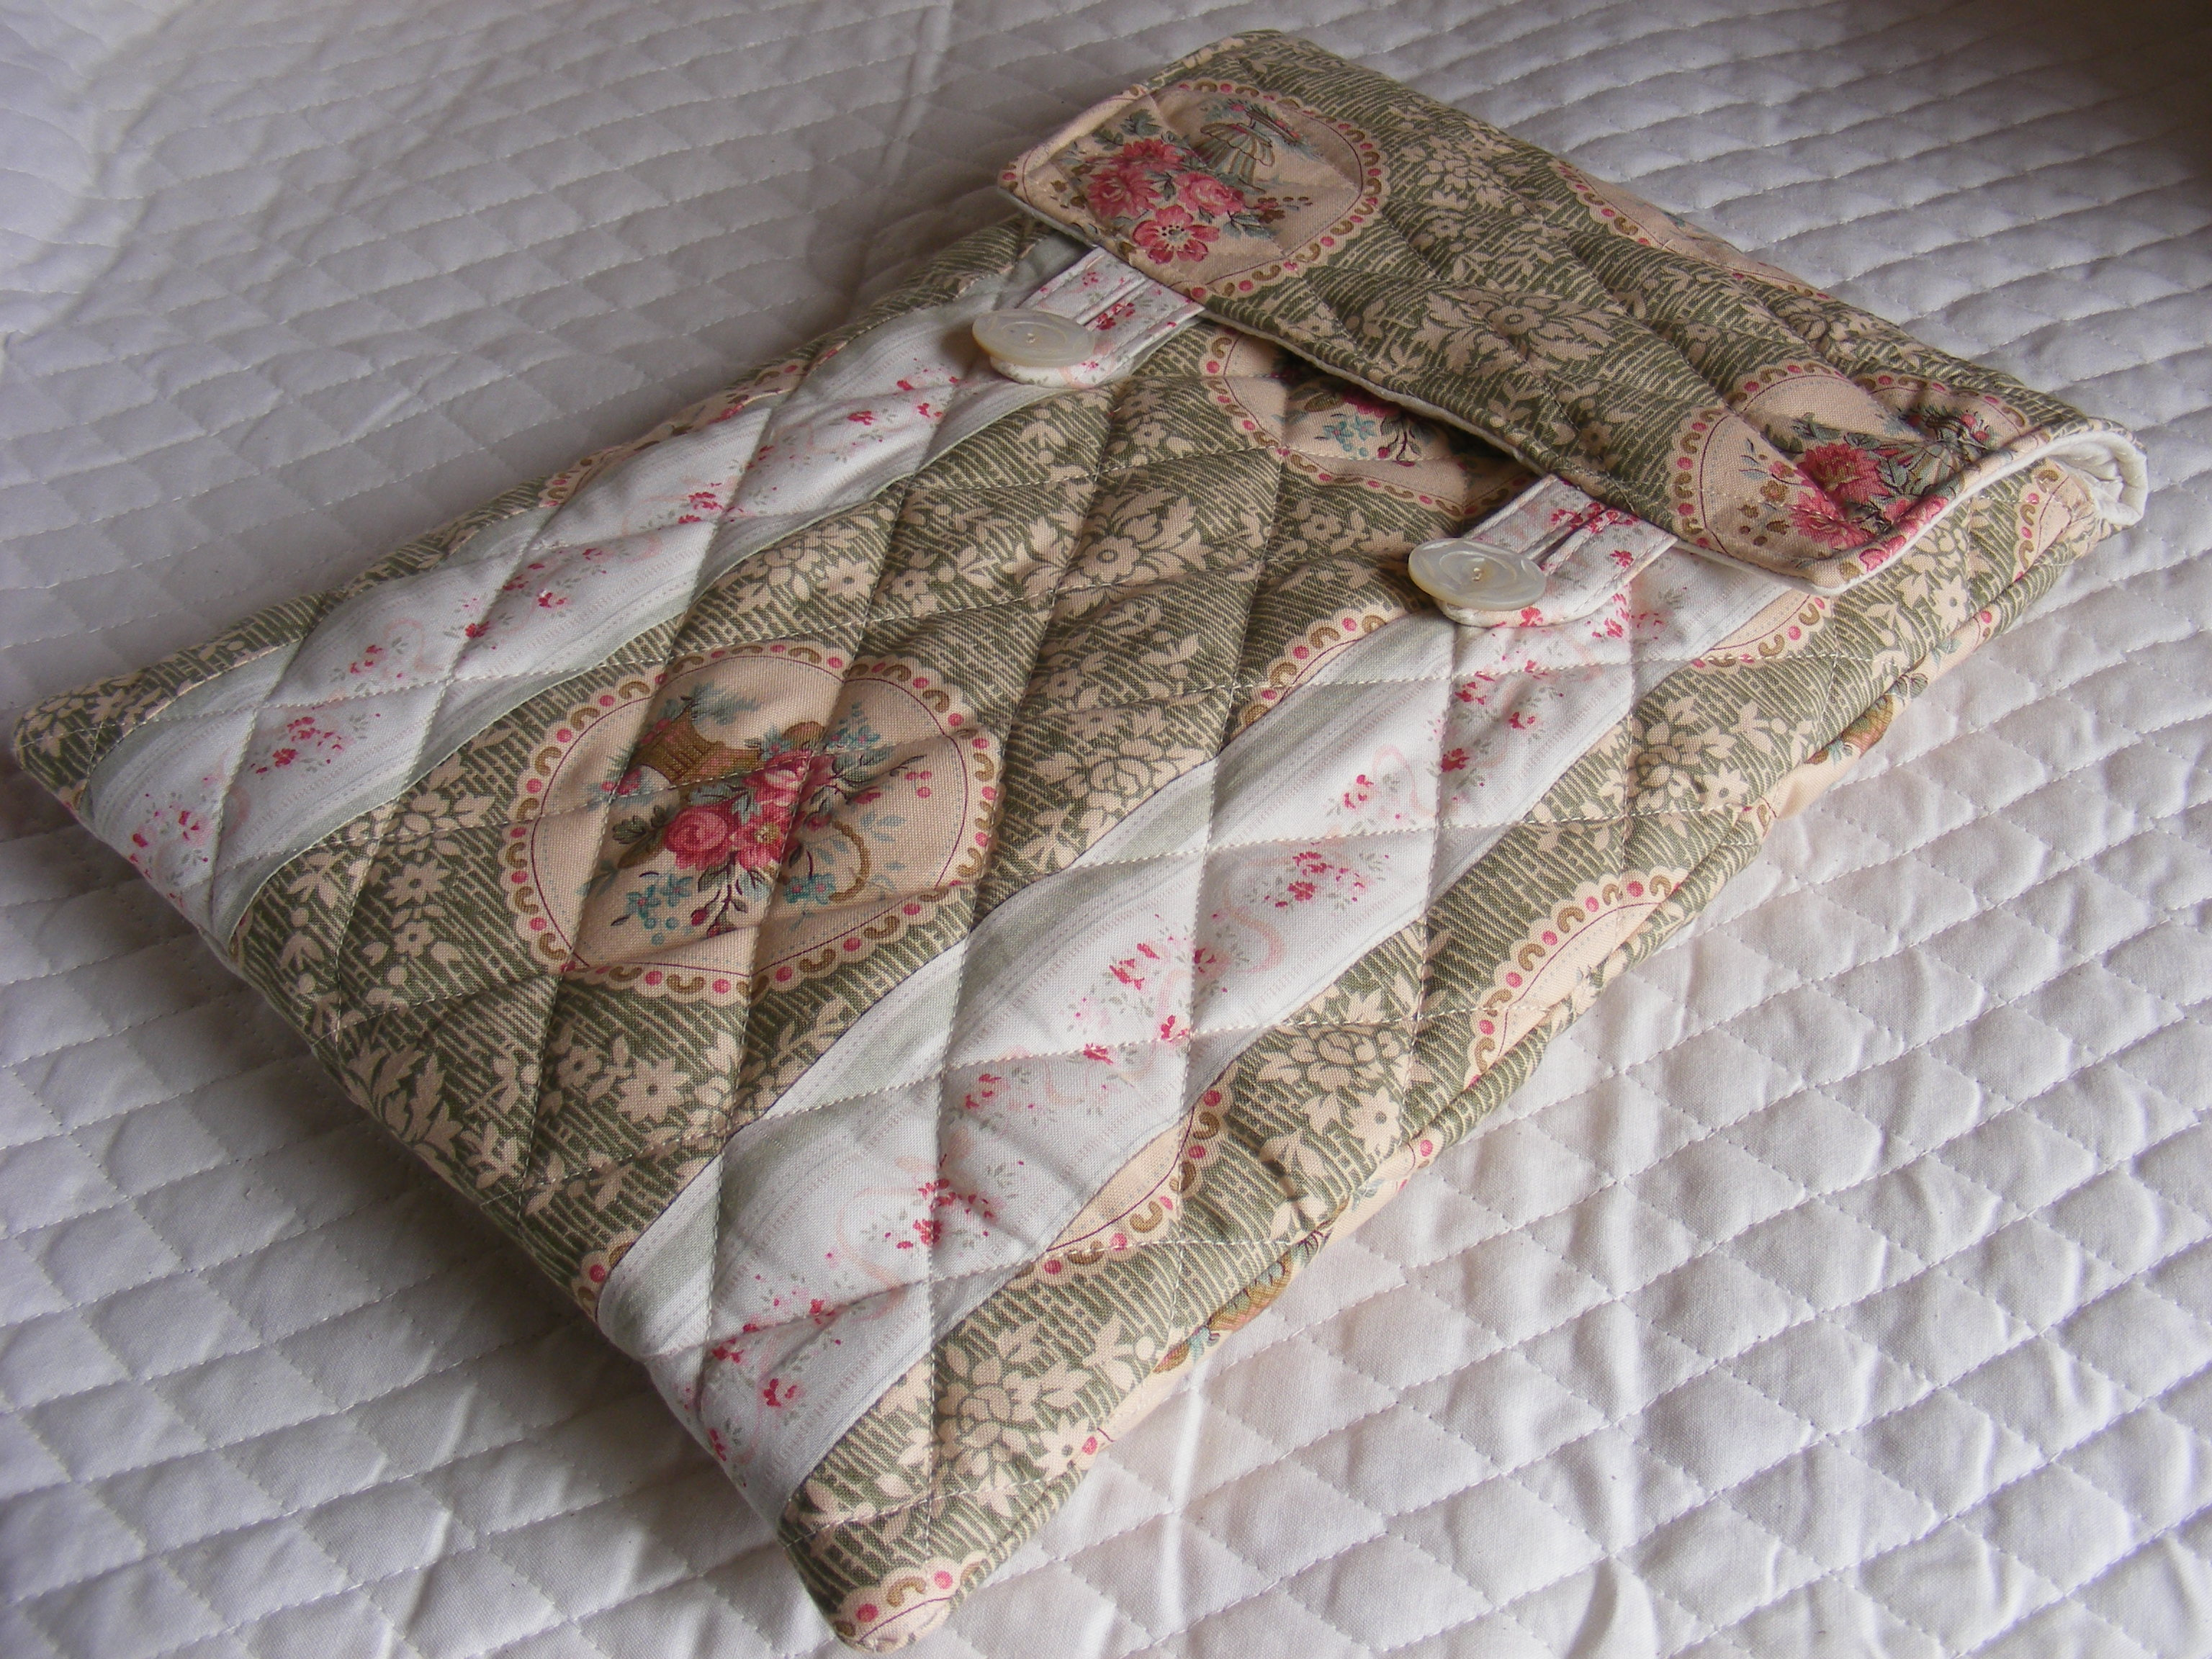 QUILTED LAPTOP SLEEVE PADDED COVER Sewing Projects BurdaStyle.com